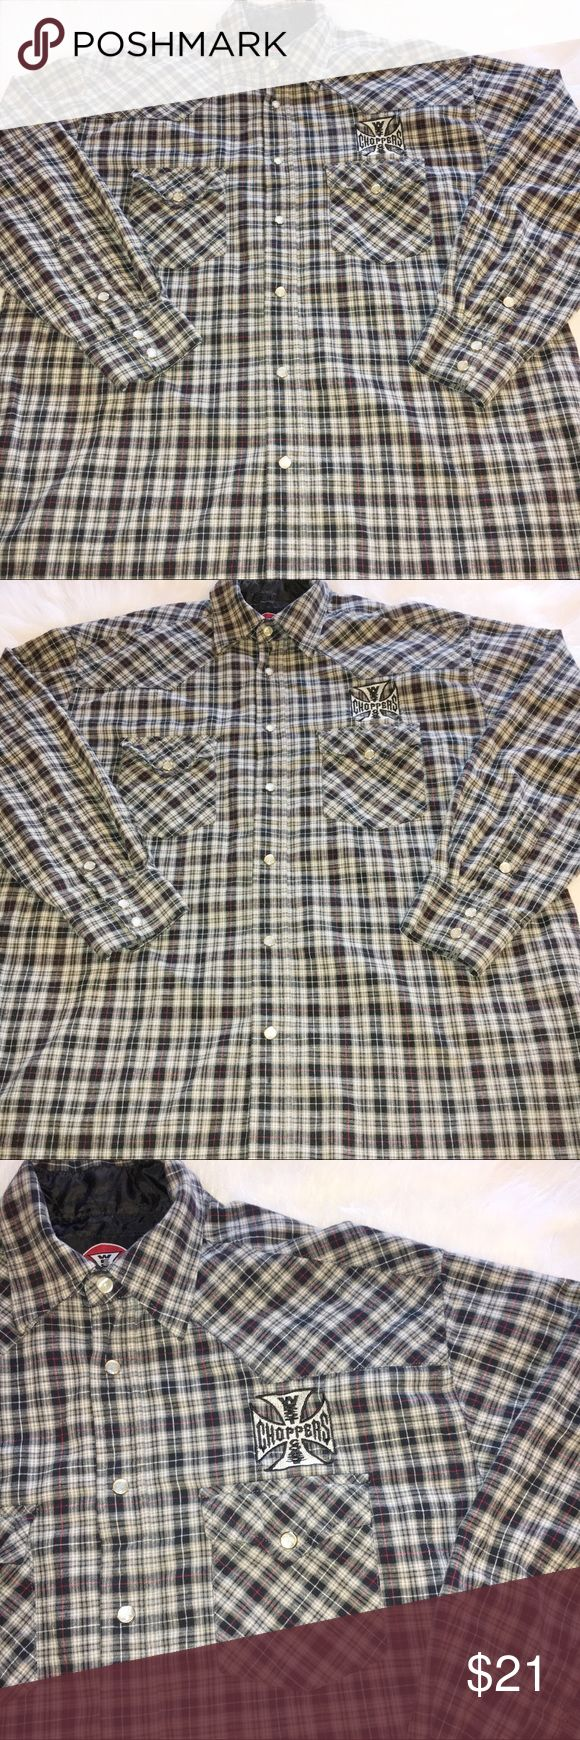 WEST COAST CHOPPERS JESSE JAMES BUTTON DOWN PLAID WEST COAST CHOPPERS JESSE JAMES PLAID BLACK WHITE RED AND GRAY BUTTON DOWN SHIRT. HAS SMALL TEAR ON BACK. SHIRT STILL HAS LOTS OF LIFE. ONE OF THE BUTTONS IS DIFFERENT, THE ONE AT THE TOP. THAT ONE ISN'T USUALLY BUTTONED. BUTTONS HAVE LOGO ON THEM. THEY LOOK LIKE PEARL SNAPS ALMOST. CLASSIC SHIRT! LONG SLEEVE. SIZE MEDIUM. West Coast Choppers Shirts Casual Button Down Shirts